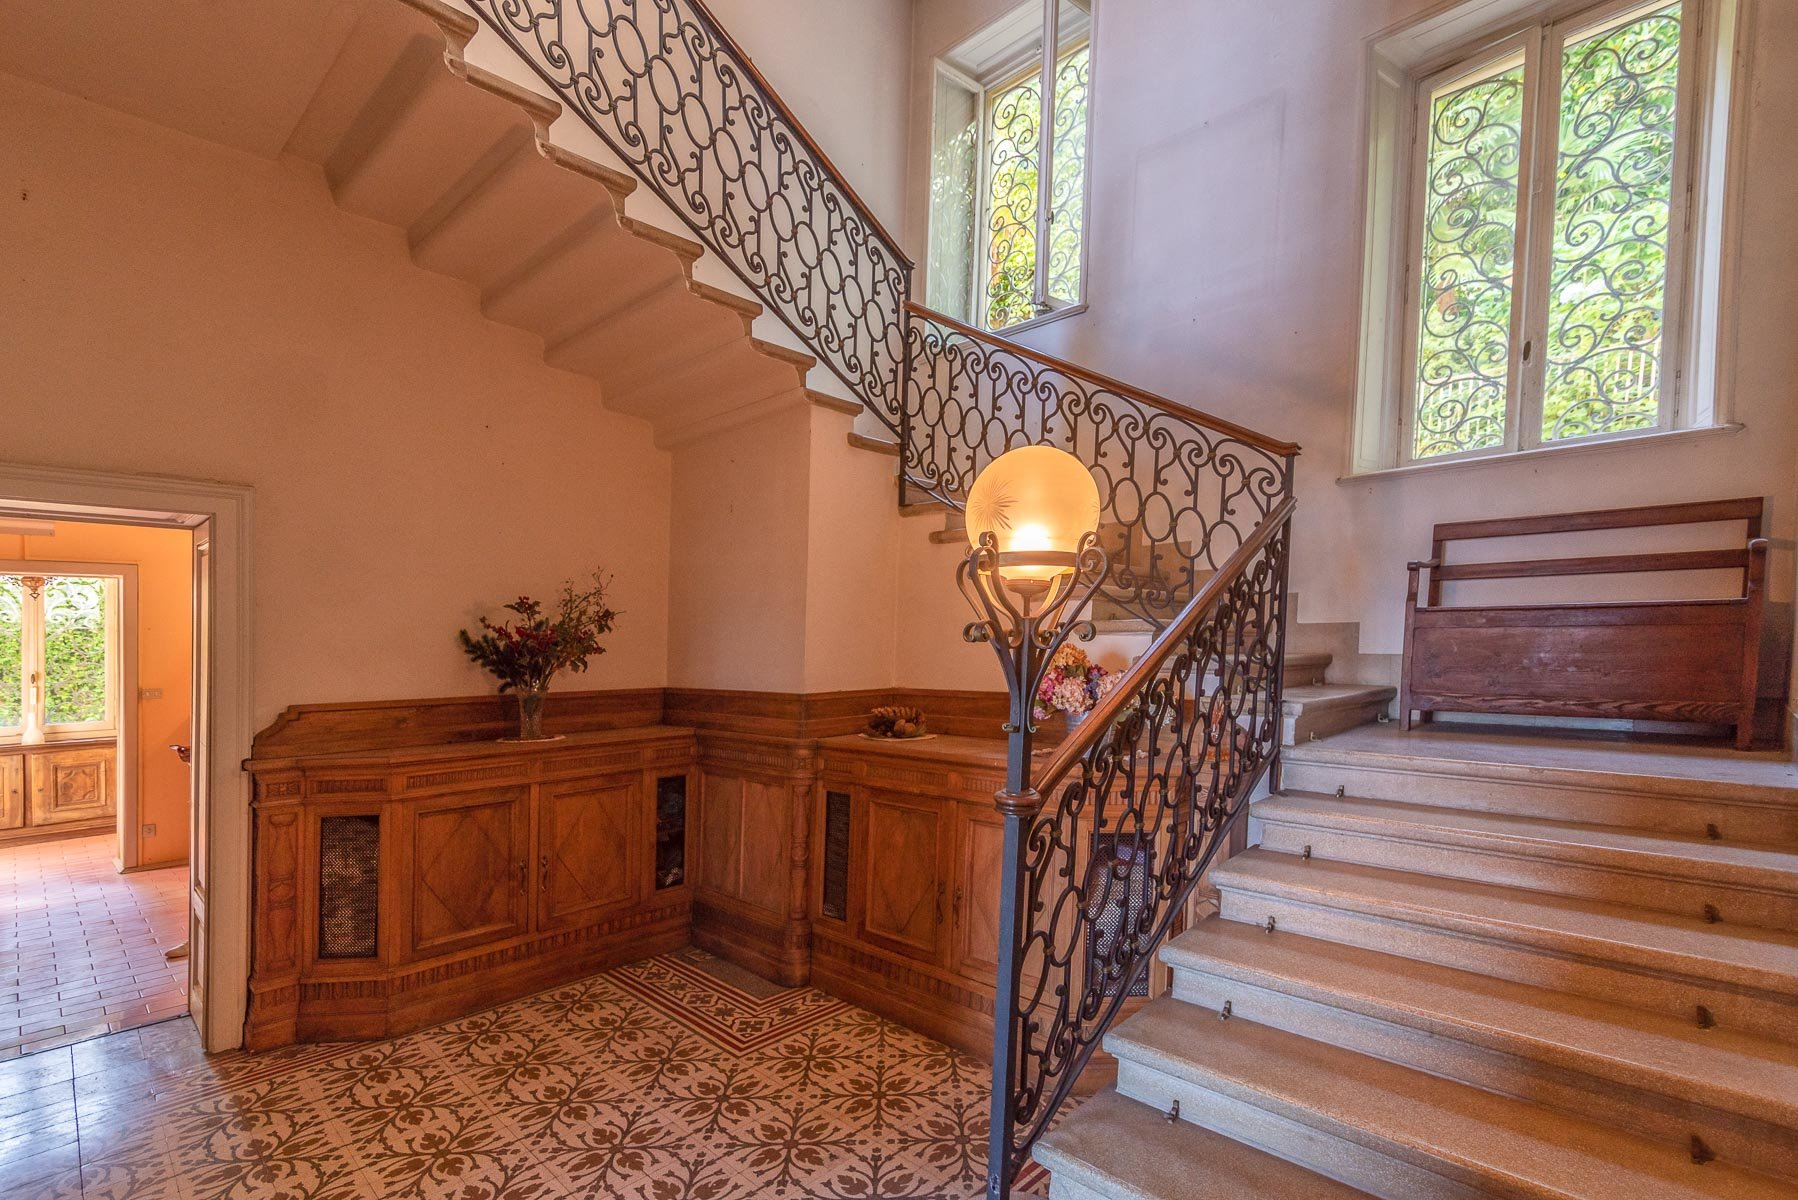 Liberty villa for sale in Stresa - stairs